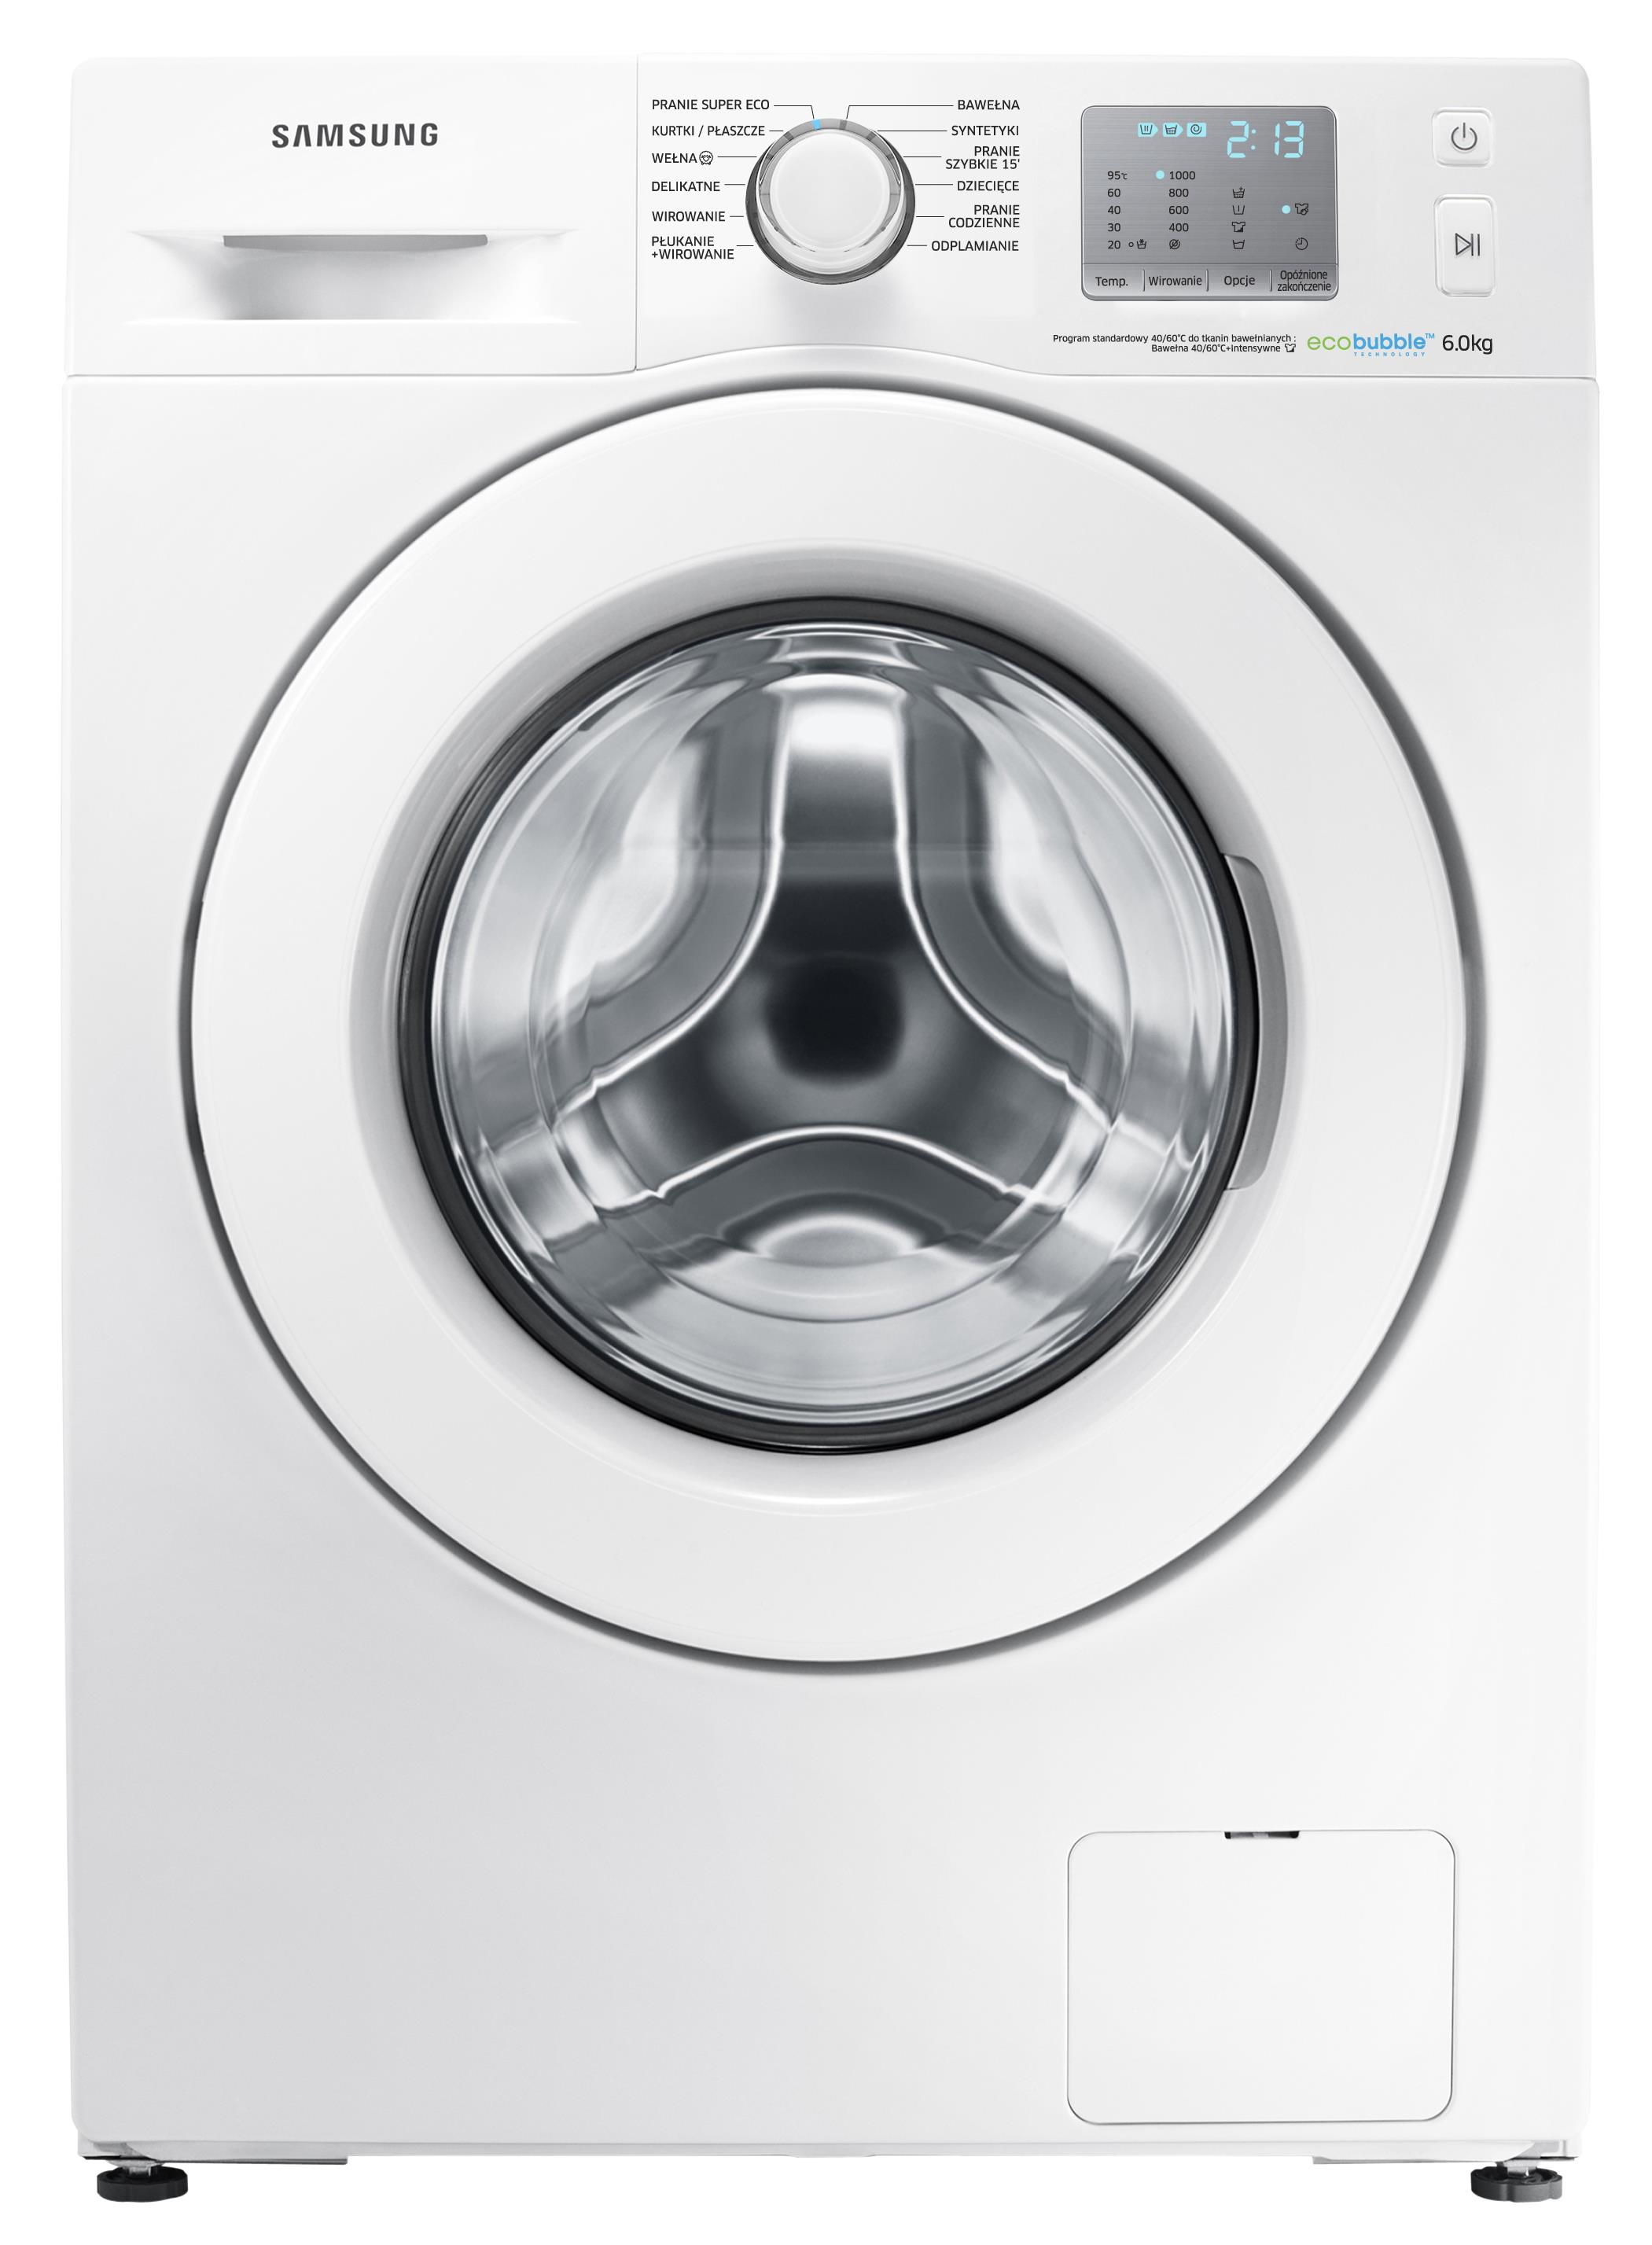 Samsung Eco Bubble Wf60f4efw0w